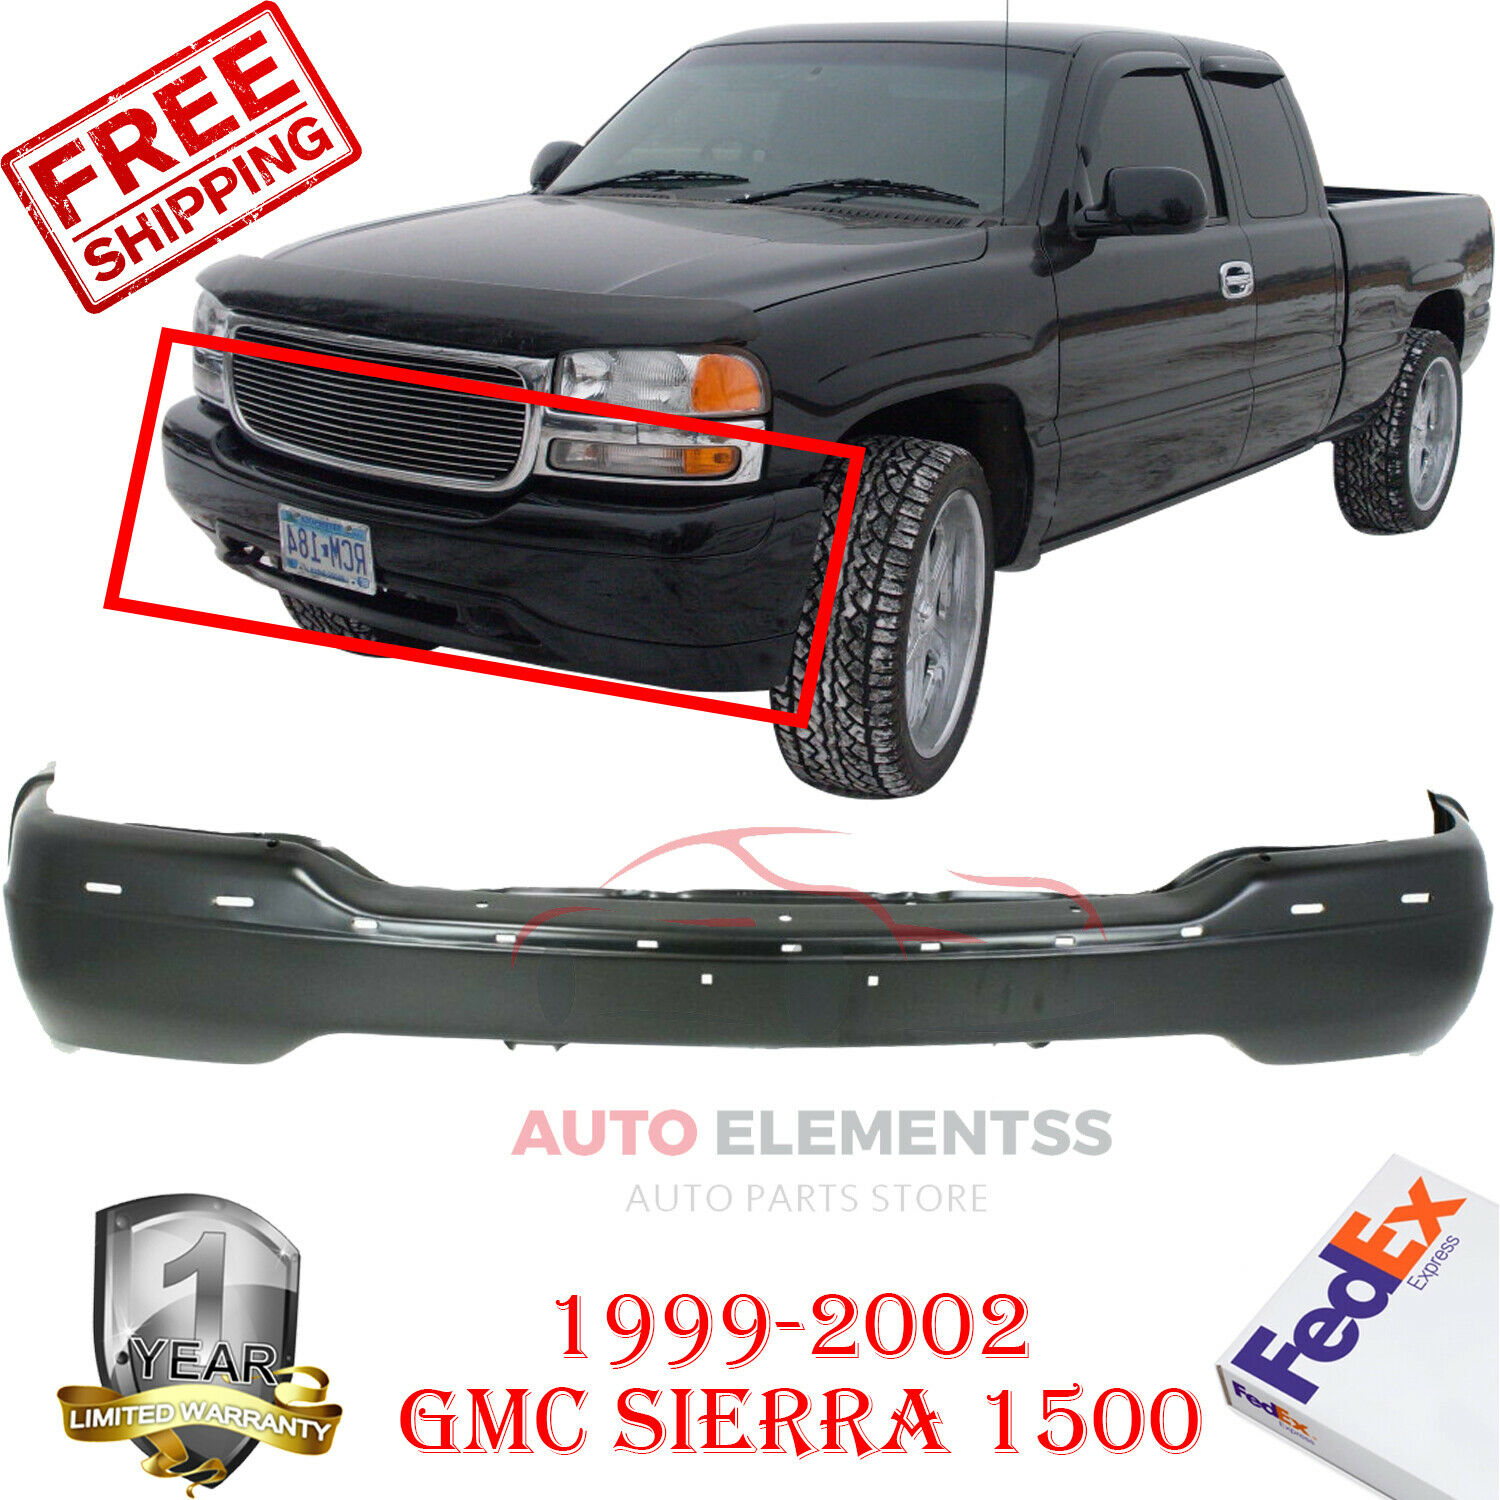 front bumper for 99 2002 gmc sierra 1500 2000 2006 yukon chrome steel ushirika coop tanzania federation of cooperatives